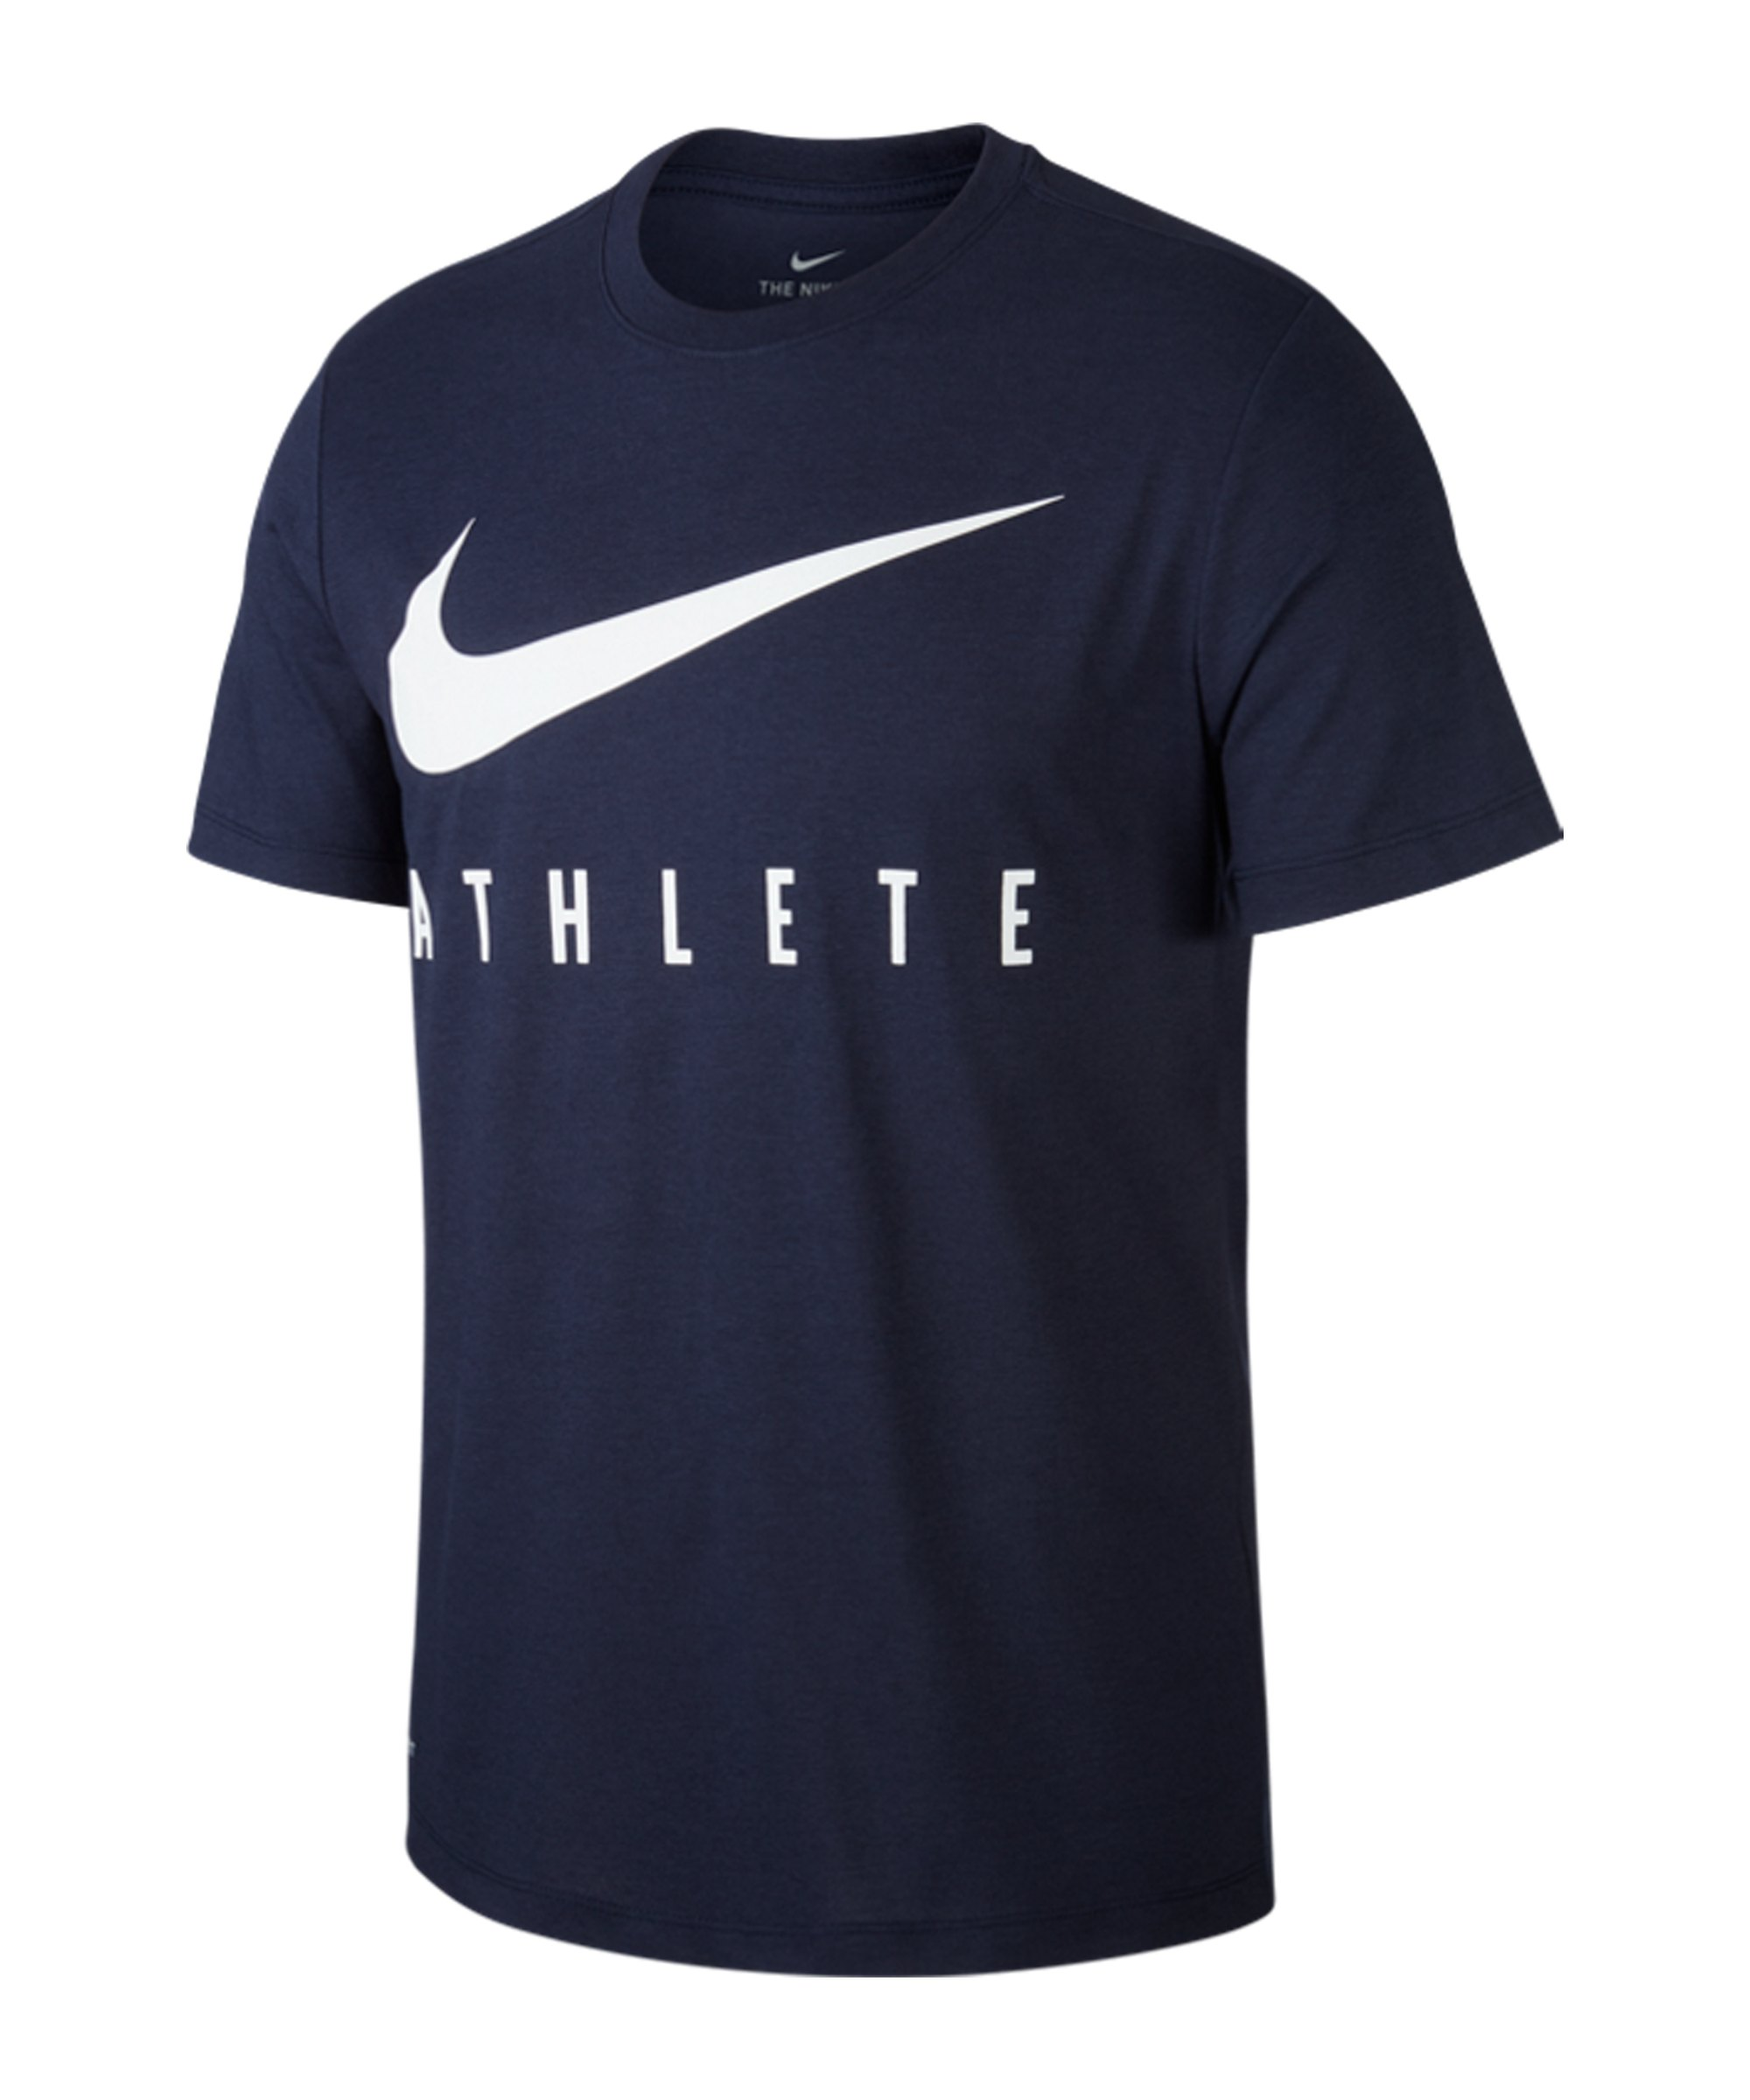 Nike Dri-FIT Athlete T-Shirt Running Blau F451 - blau